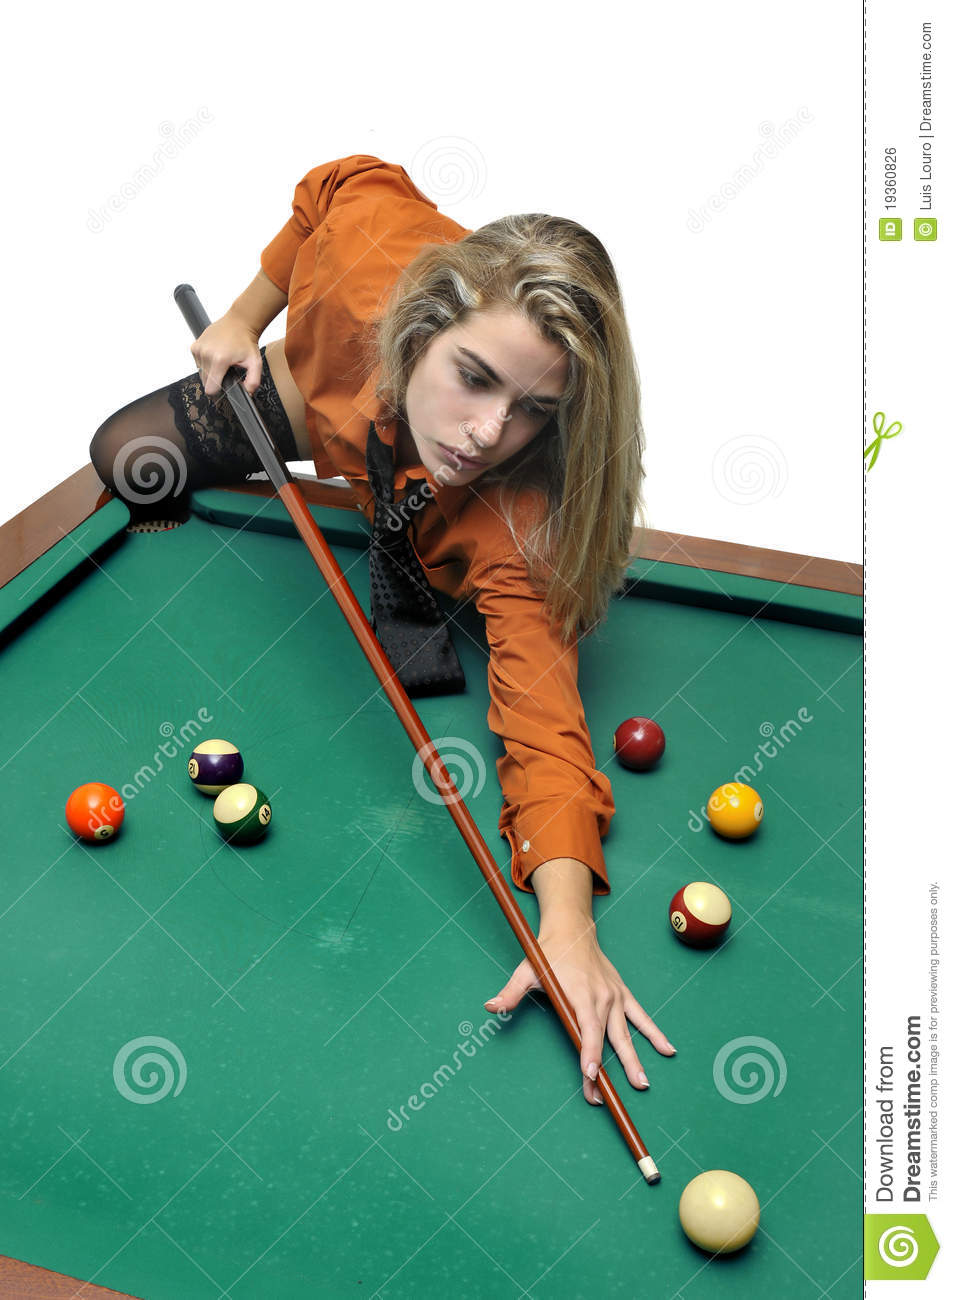 Snooker Girl Stock Photo Image Of Business, Girl, Motivated - 19360826-8864